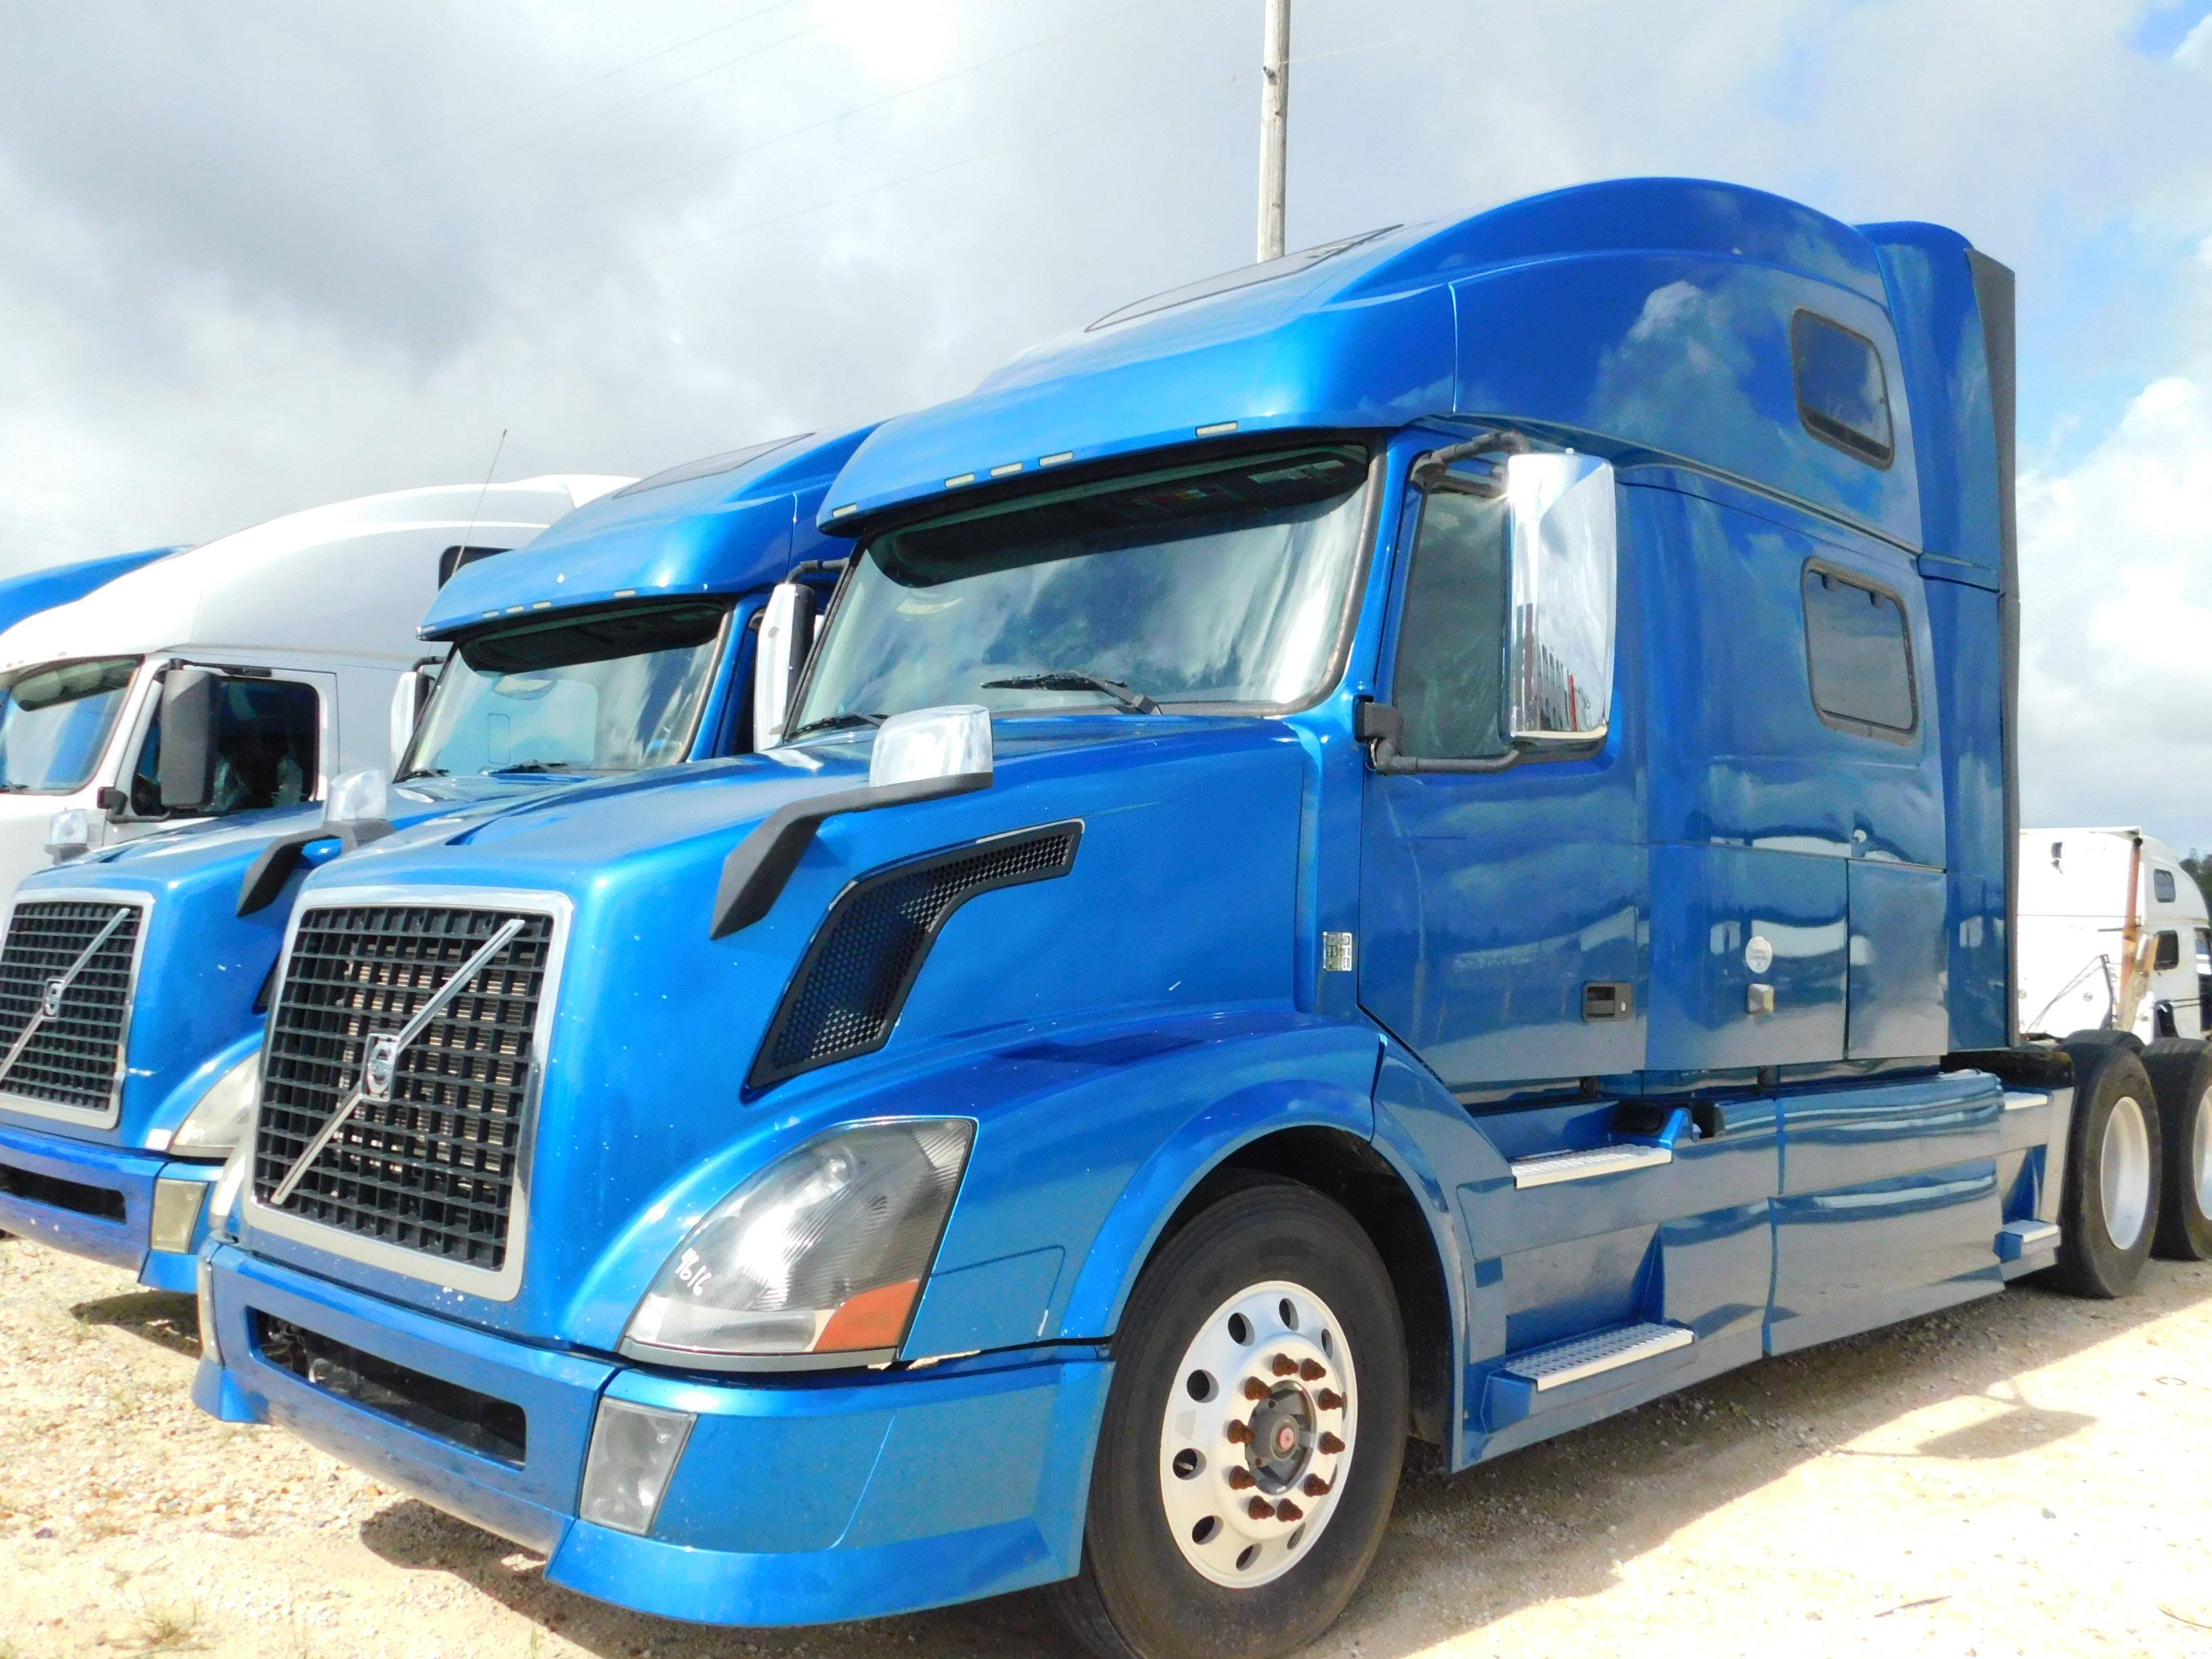 USED 2013 VOLVO 780 SLEEPER TRUCK #76738